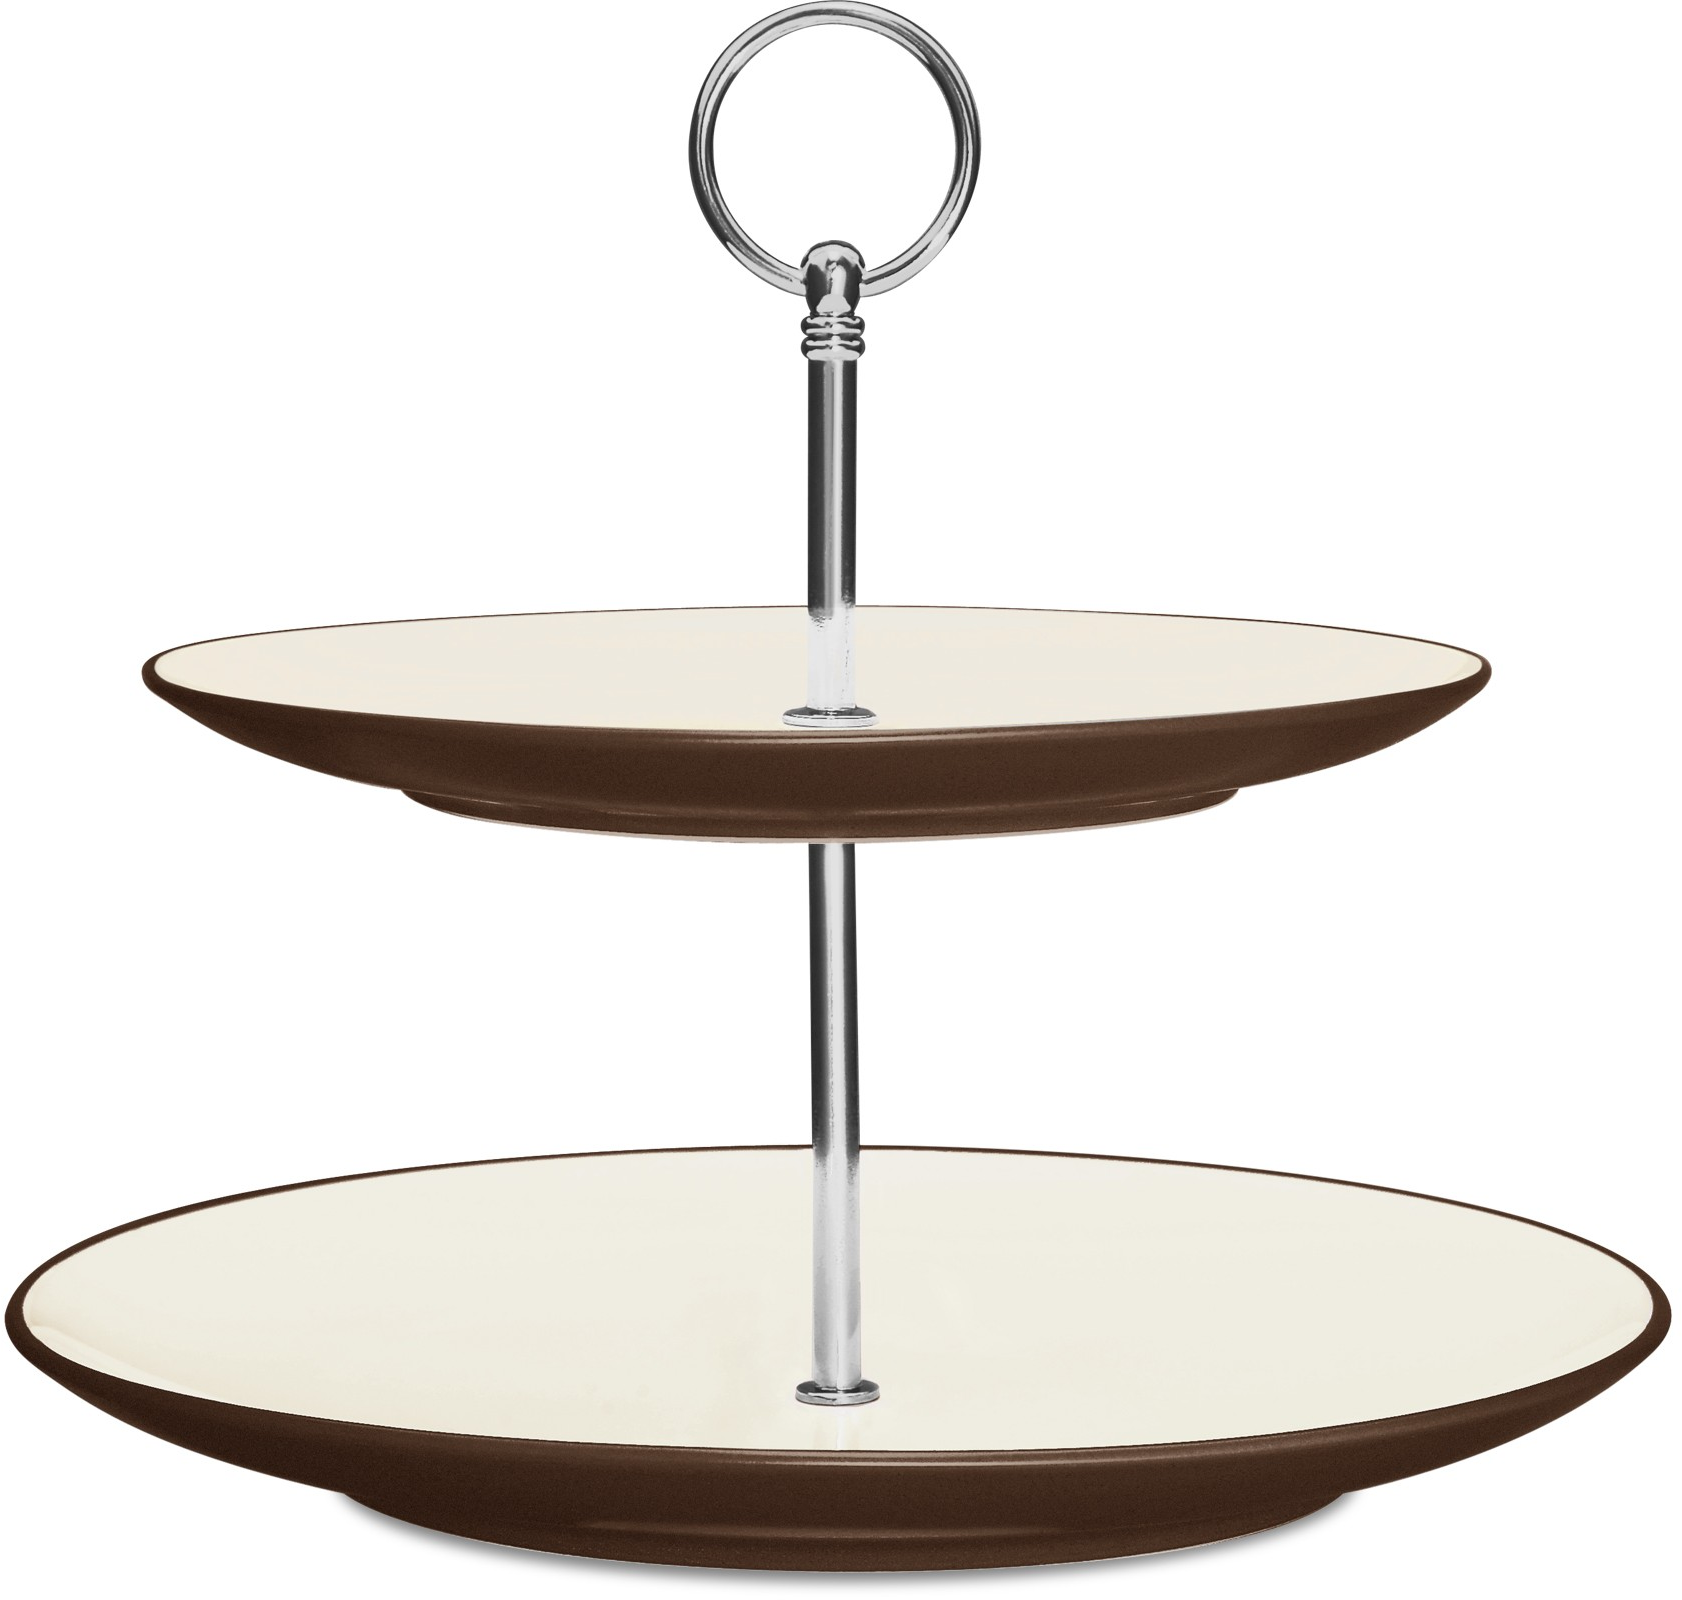 Noritake Colorwave Chocolate Two Tiered Hostess Tray